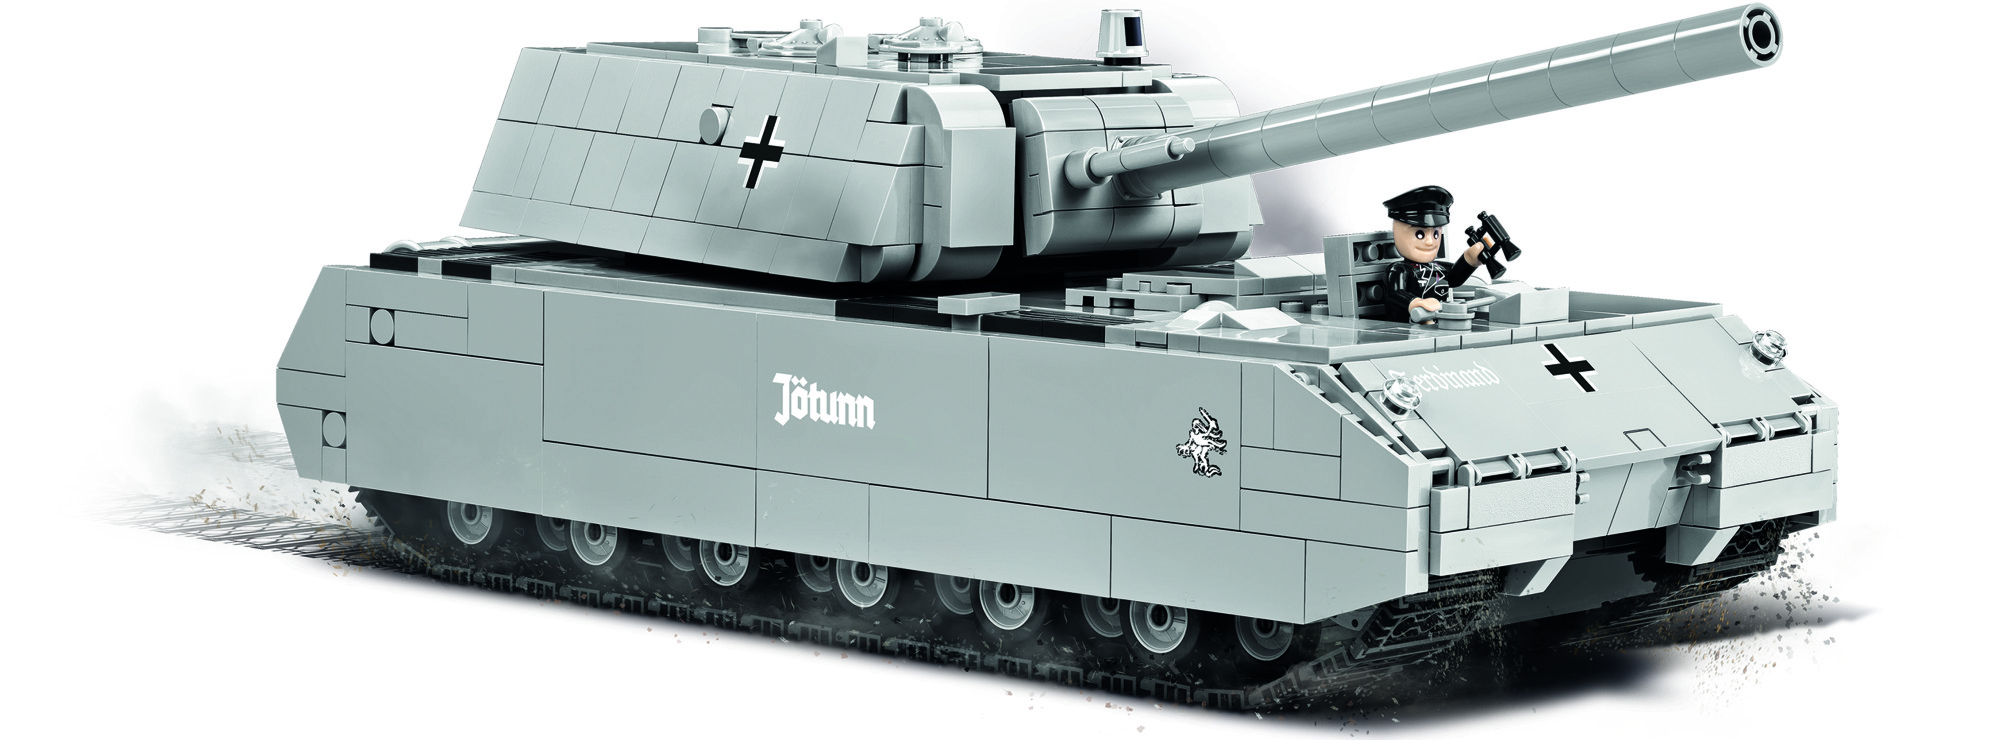 Cobi 3024 Pz Kpfw Viii Maus World Of Tanks Panzer Baukasten